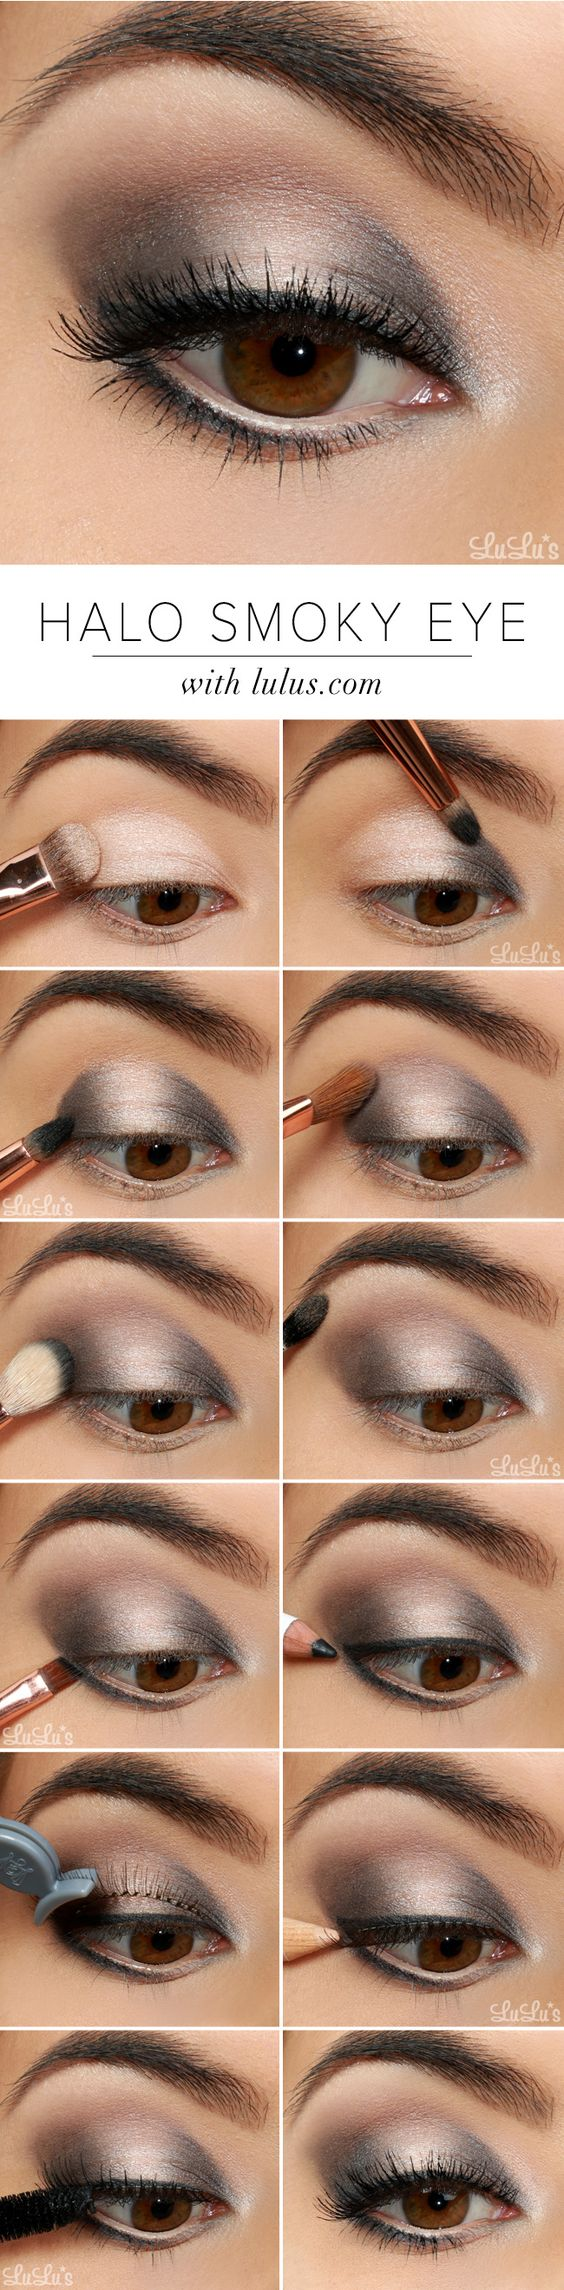 20 Easy Step By Step Eyeshadow Tutorials For Beginners Her Style Code